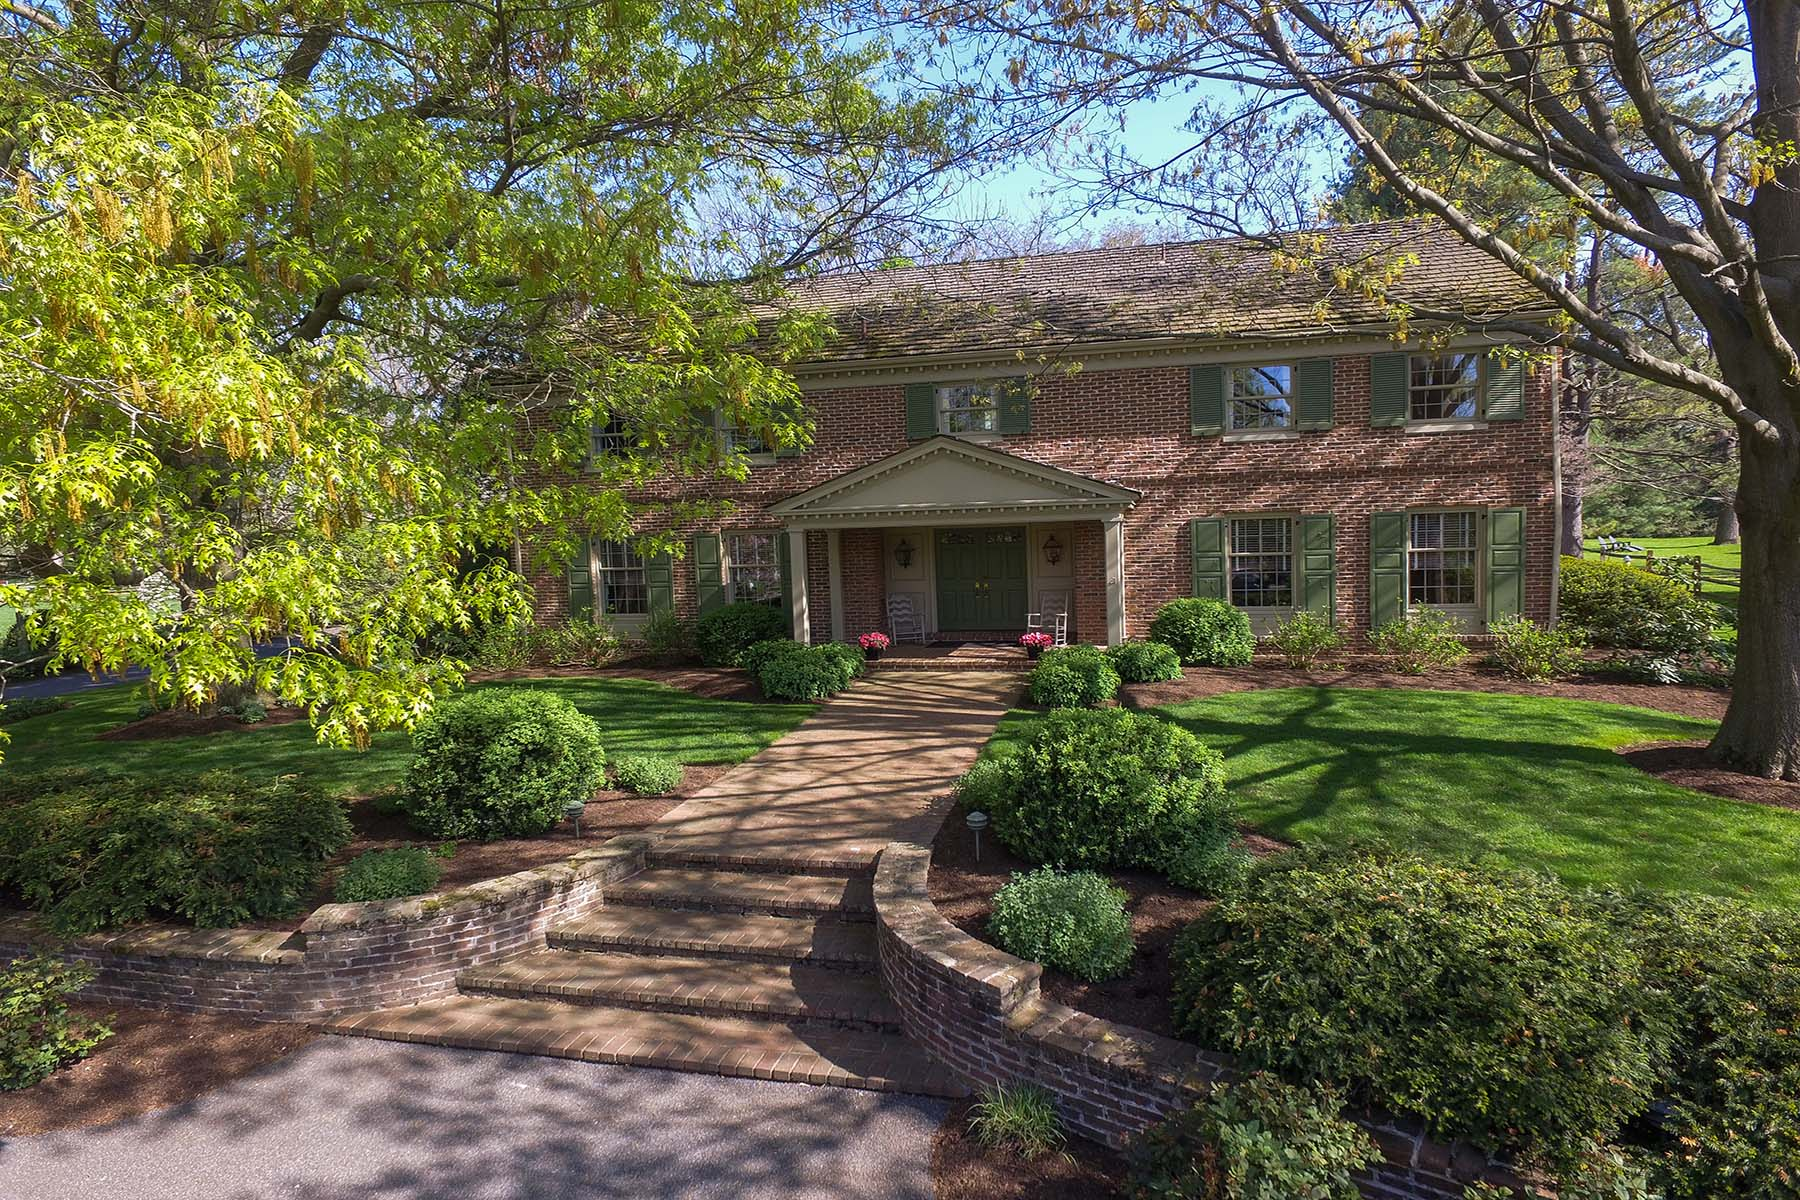 Single Family Home for Sale at 1313 Hunsicker Road Lancaster, Pennsylvania 17601 United States